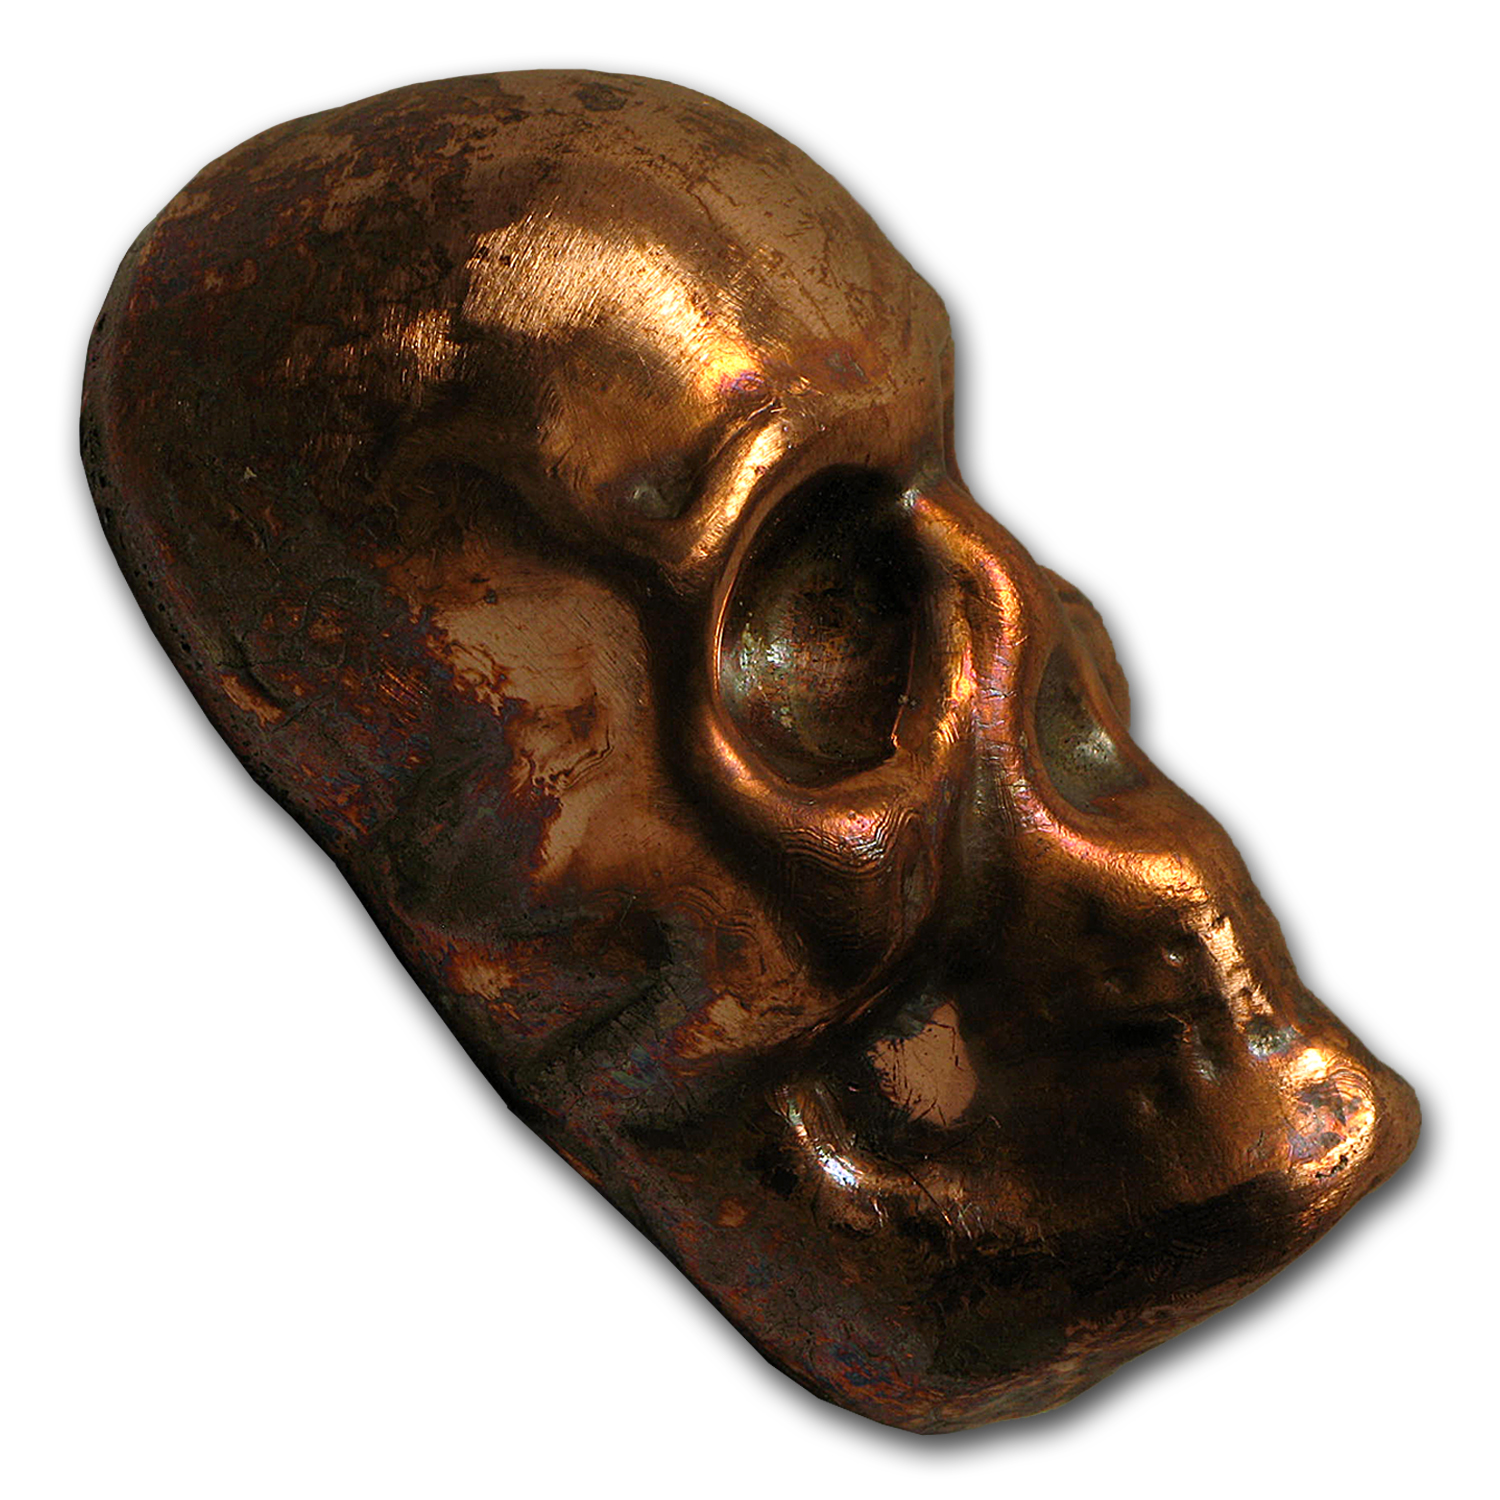 4 oz Copper Skull - MK Barz & Bullion (Poured)